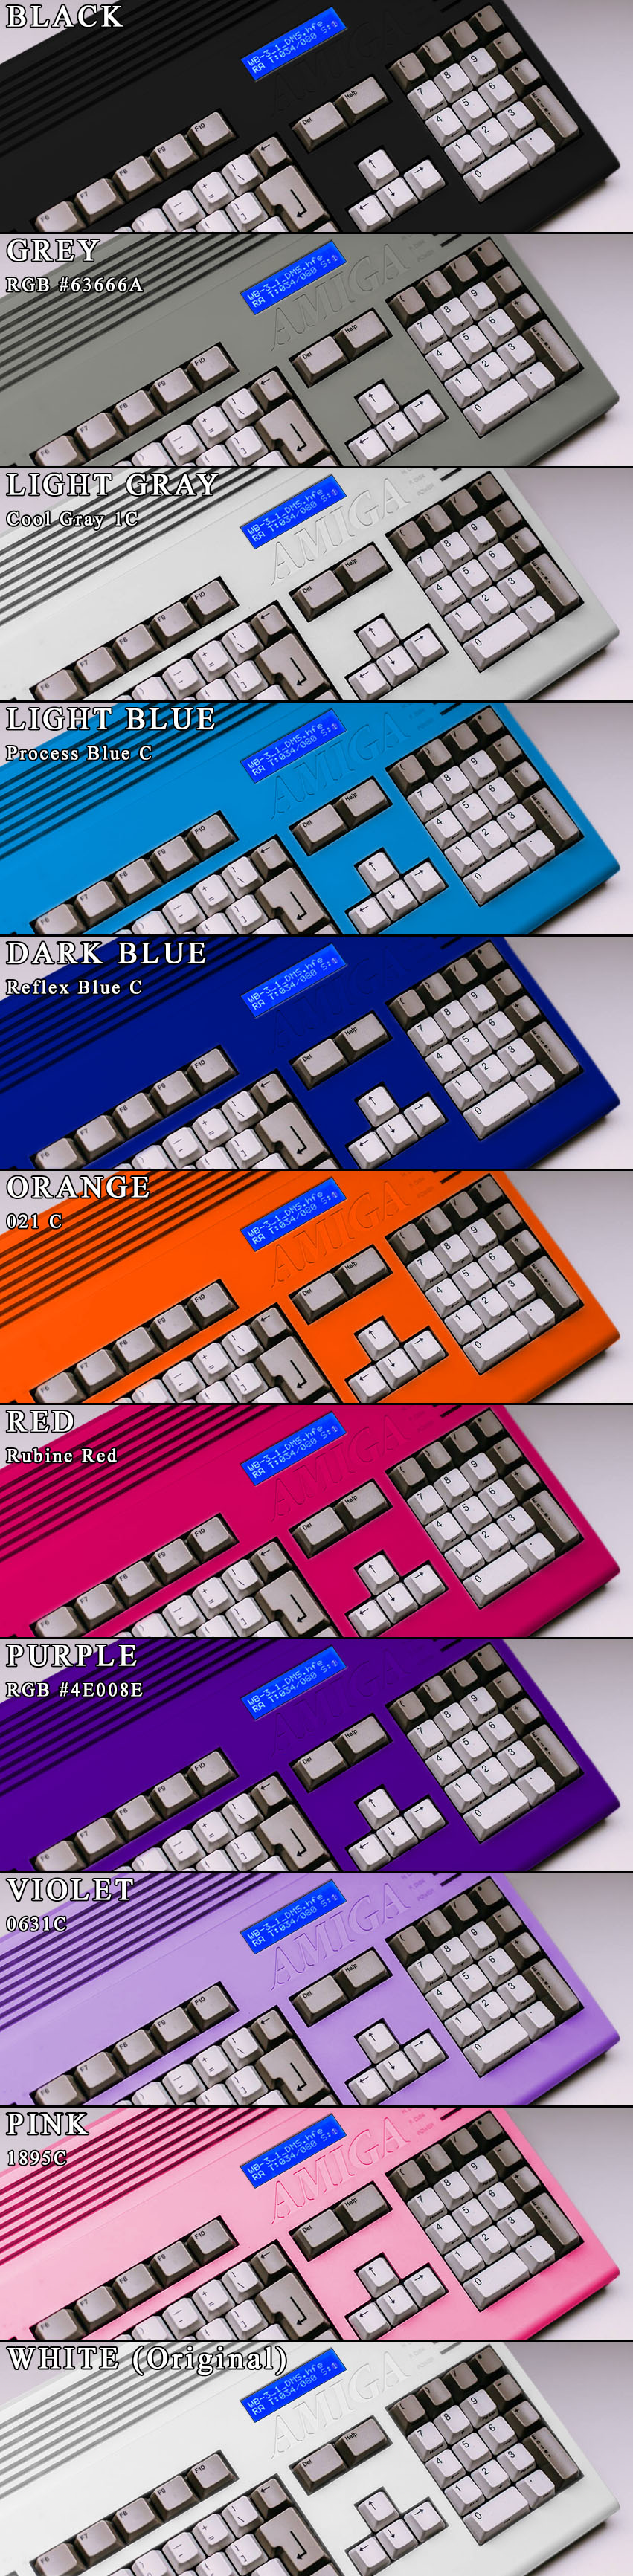 Amiga 1200 case - colours